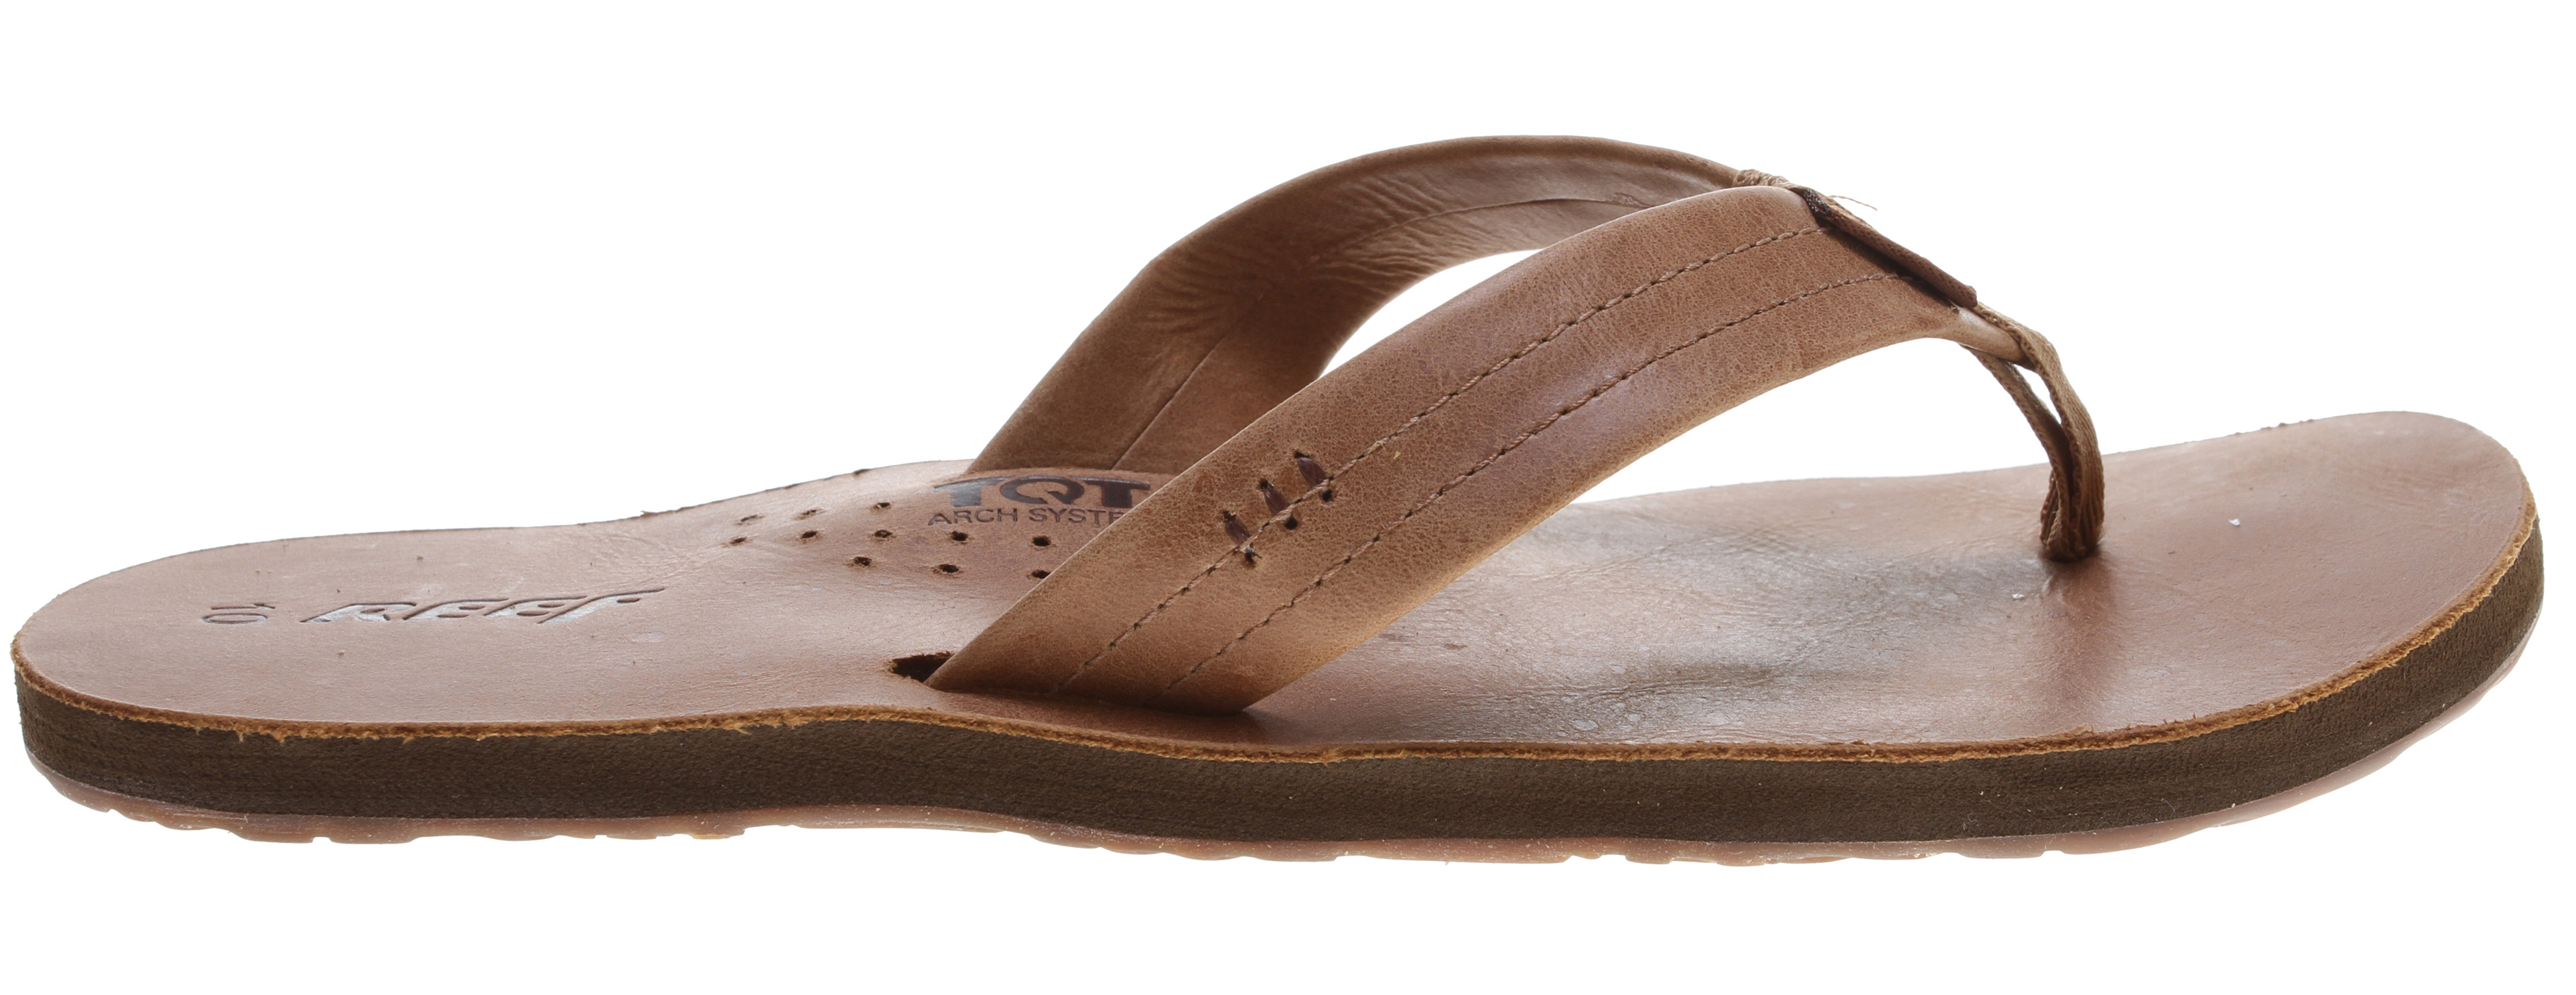 "Surf Key Features of the Reef Draftsmen Sandals: Split leather strap with wax and polish finish footbed and strap Molded TQT ""Thirst Quenching Technology"" arch system Reef quality EVA midsole material and construction Highly abrasion resistant molded Reef rubber non-marking outsole - $38.95"